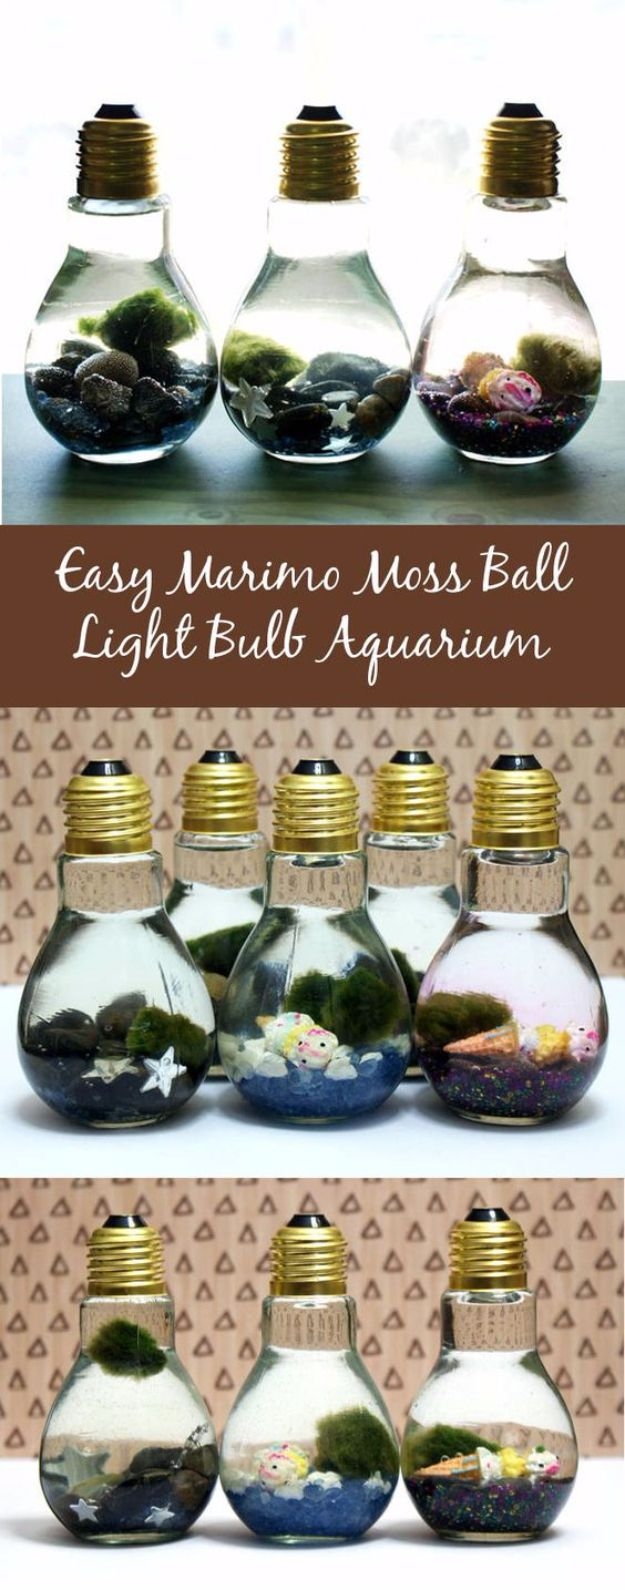 41 of the easiest diys ever marimo moss ball simple craft ideas